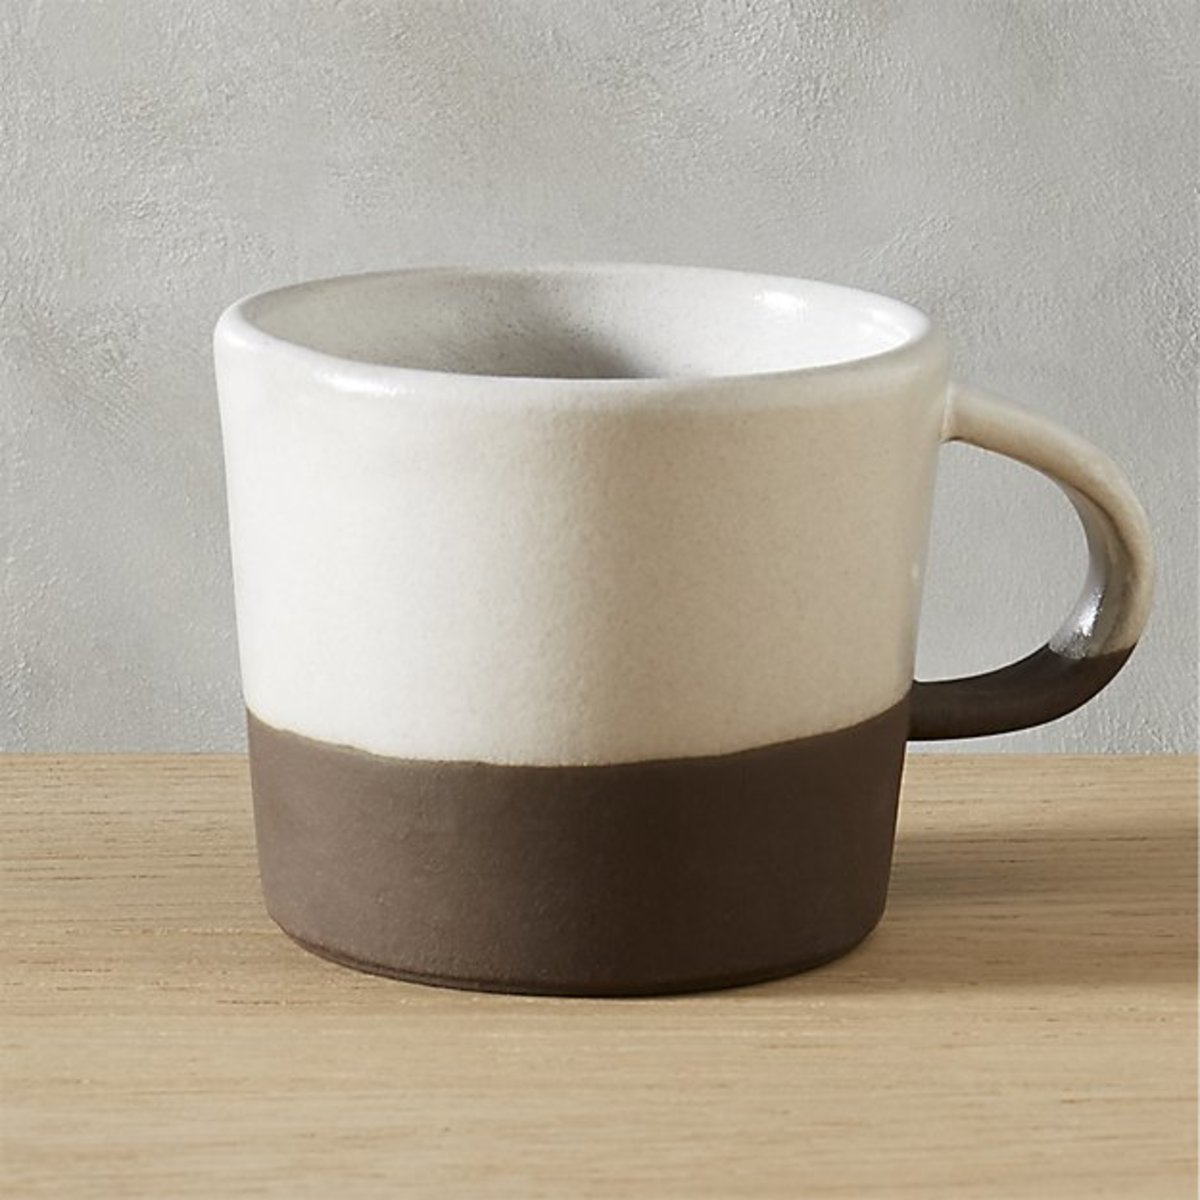 5 Minimalist Ceramic Mugs Made for Morning Coffee - Organic Authority